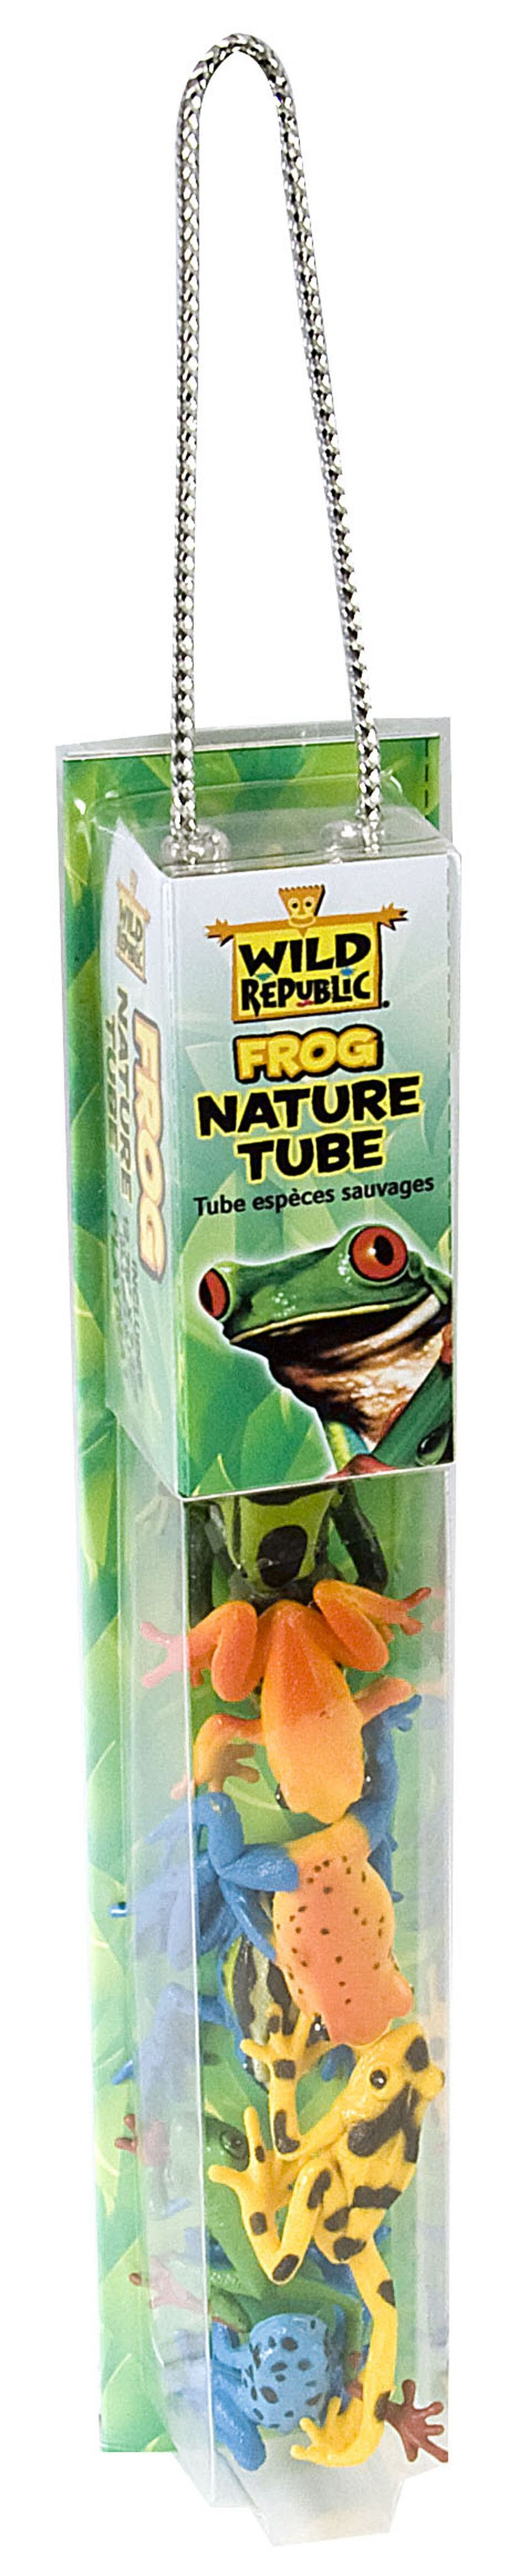 Nature Tube Frog Frog figurines, Frog, Pet toys